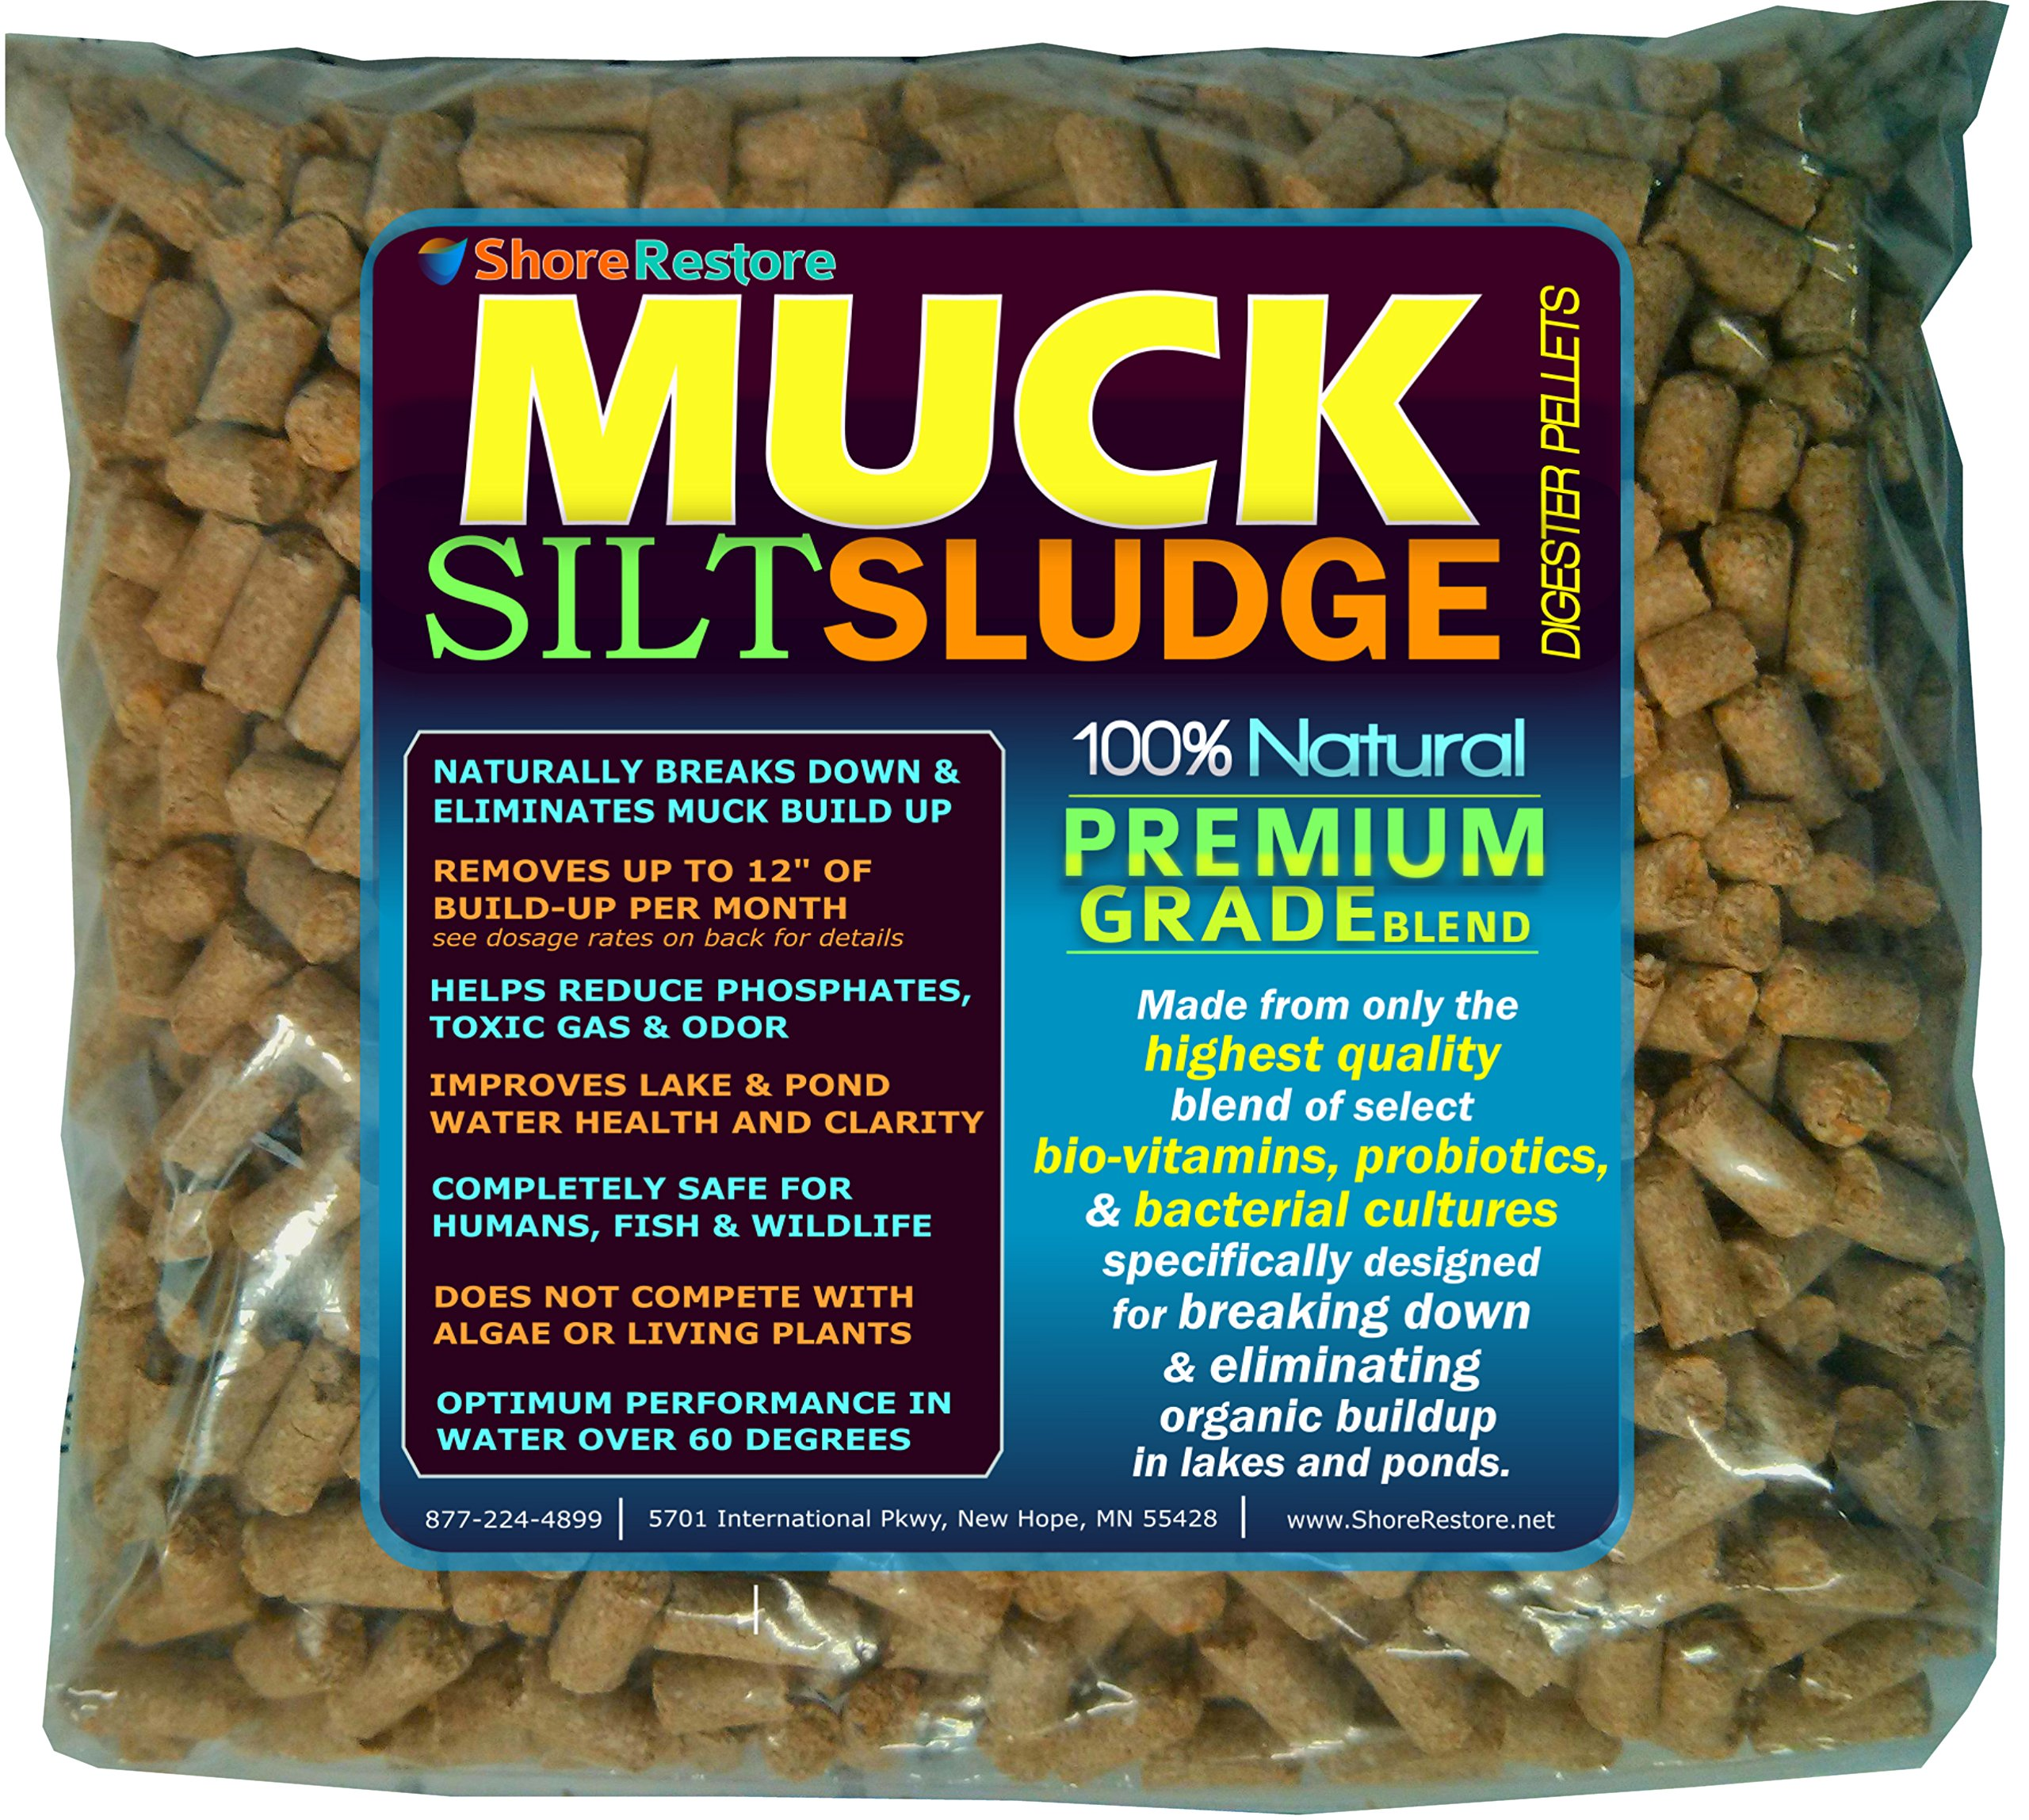 ShoreRestore - MUCK SILT SLUDGE Digester Pellets for Lakes & Ponds - Naturally Removes & Reduces Sediment (1, 1lb) by Shore Restore